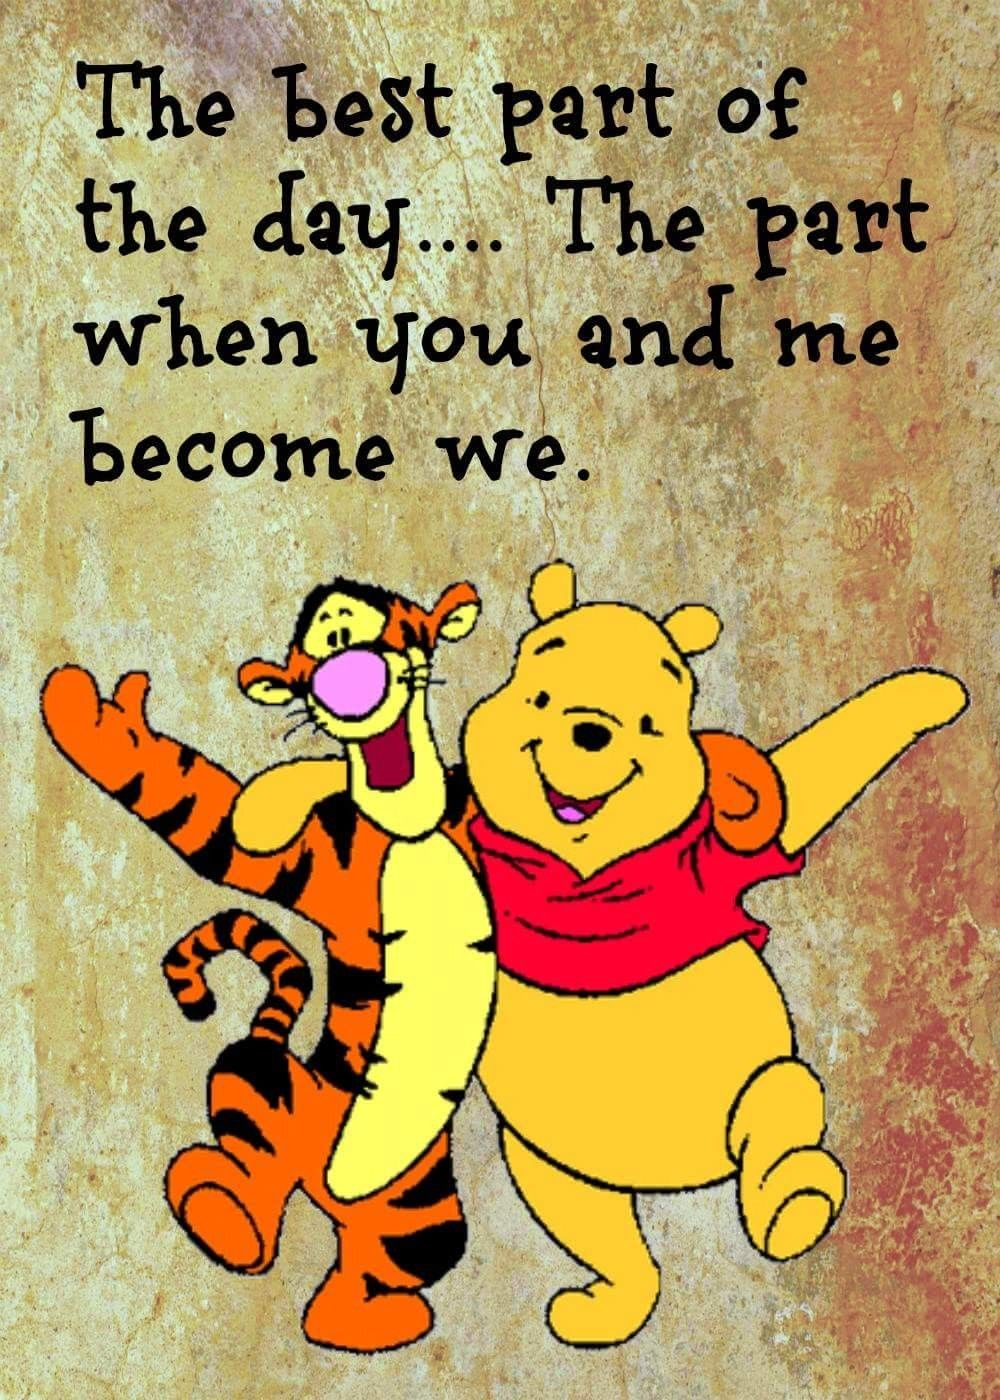 Disney Quote About Friendship Pintom Tom On Pooh Love  Pinterest  Pooh Bear Eeyore And Wisdom